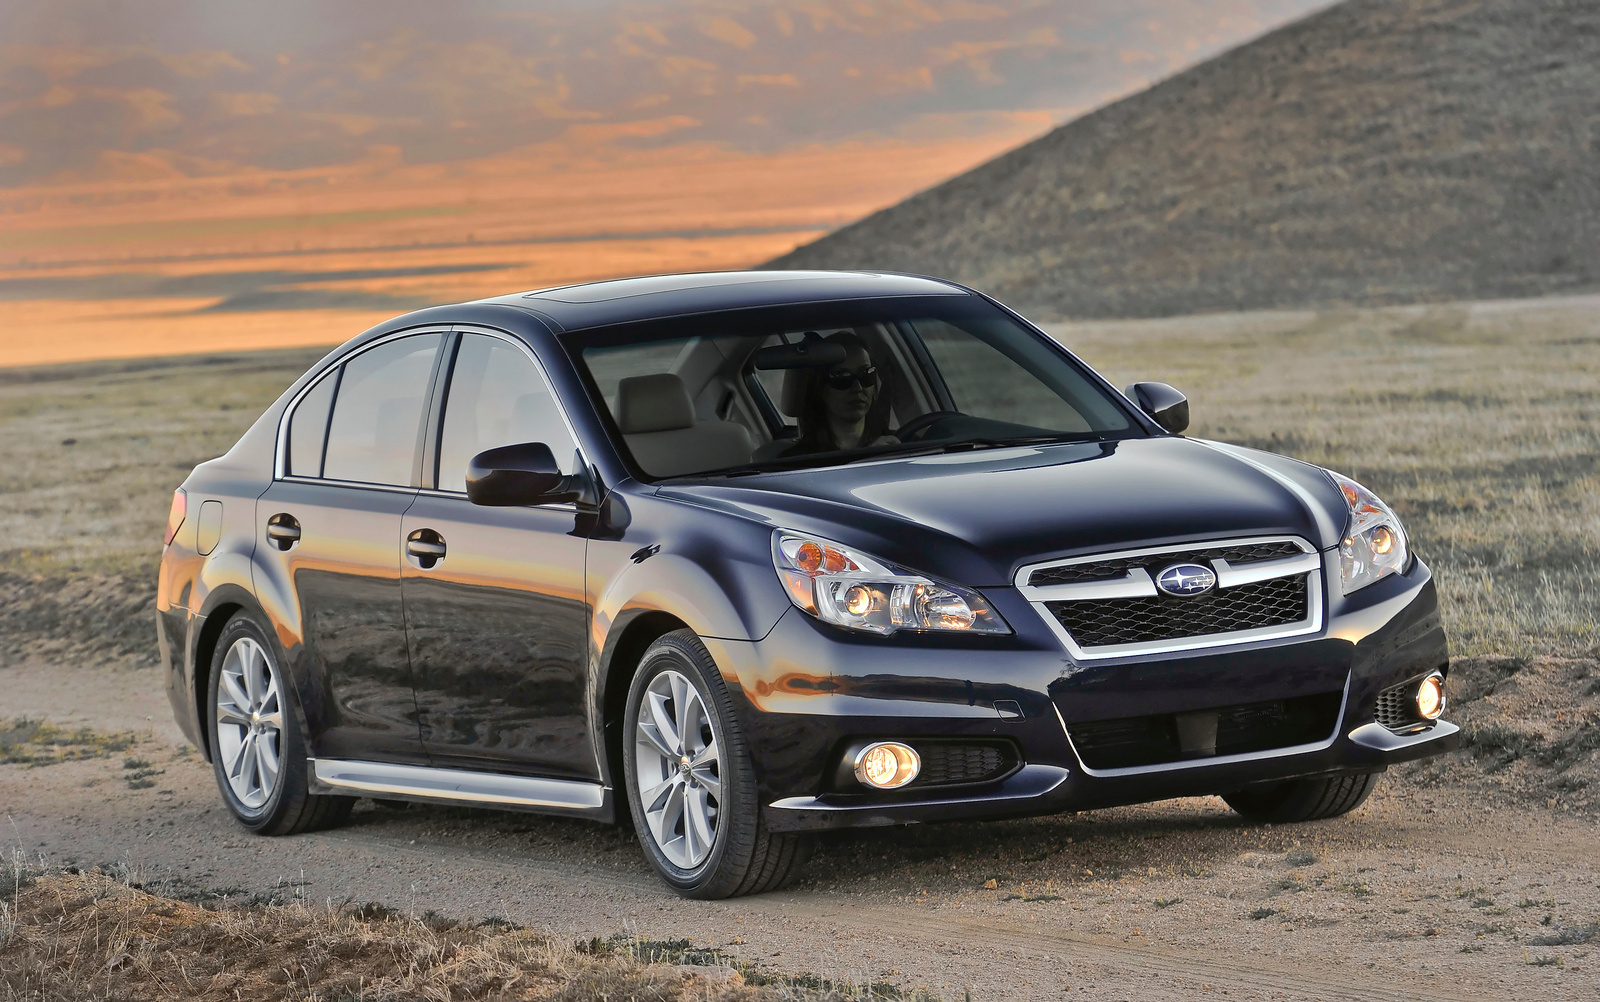 2013 subaru legacy pictures cargurus. Black Bedroom Furniture Sets. Home Design Ideas